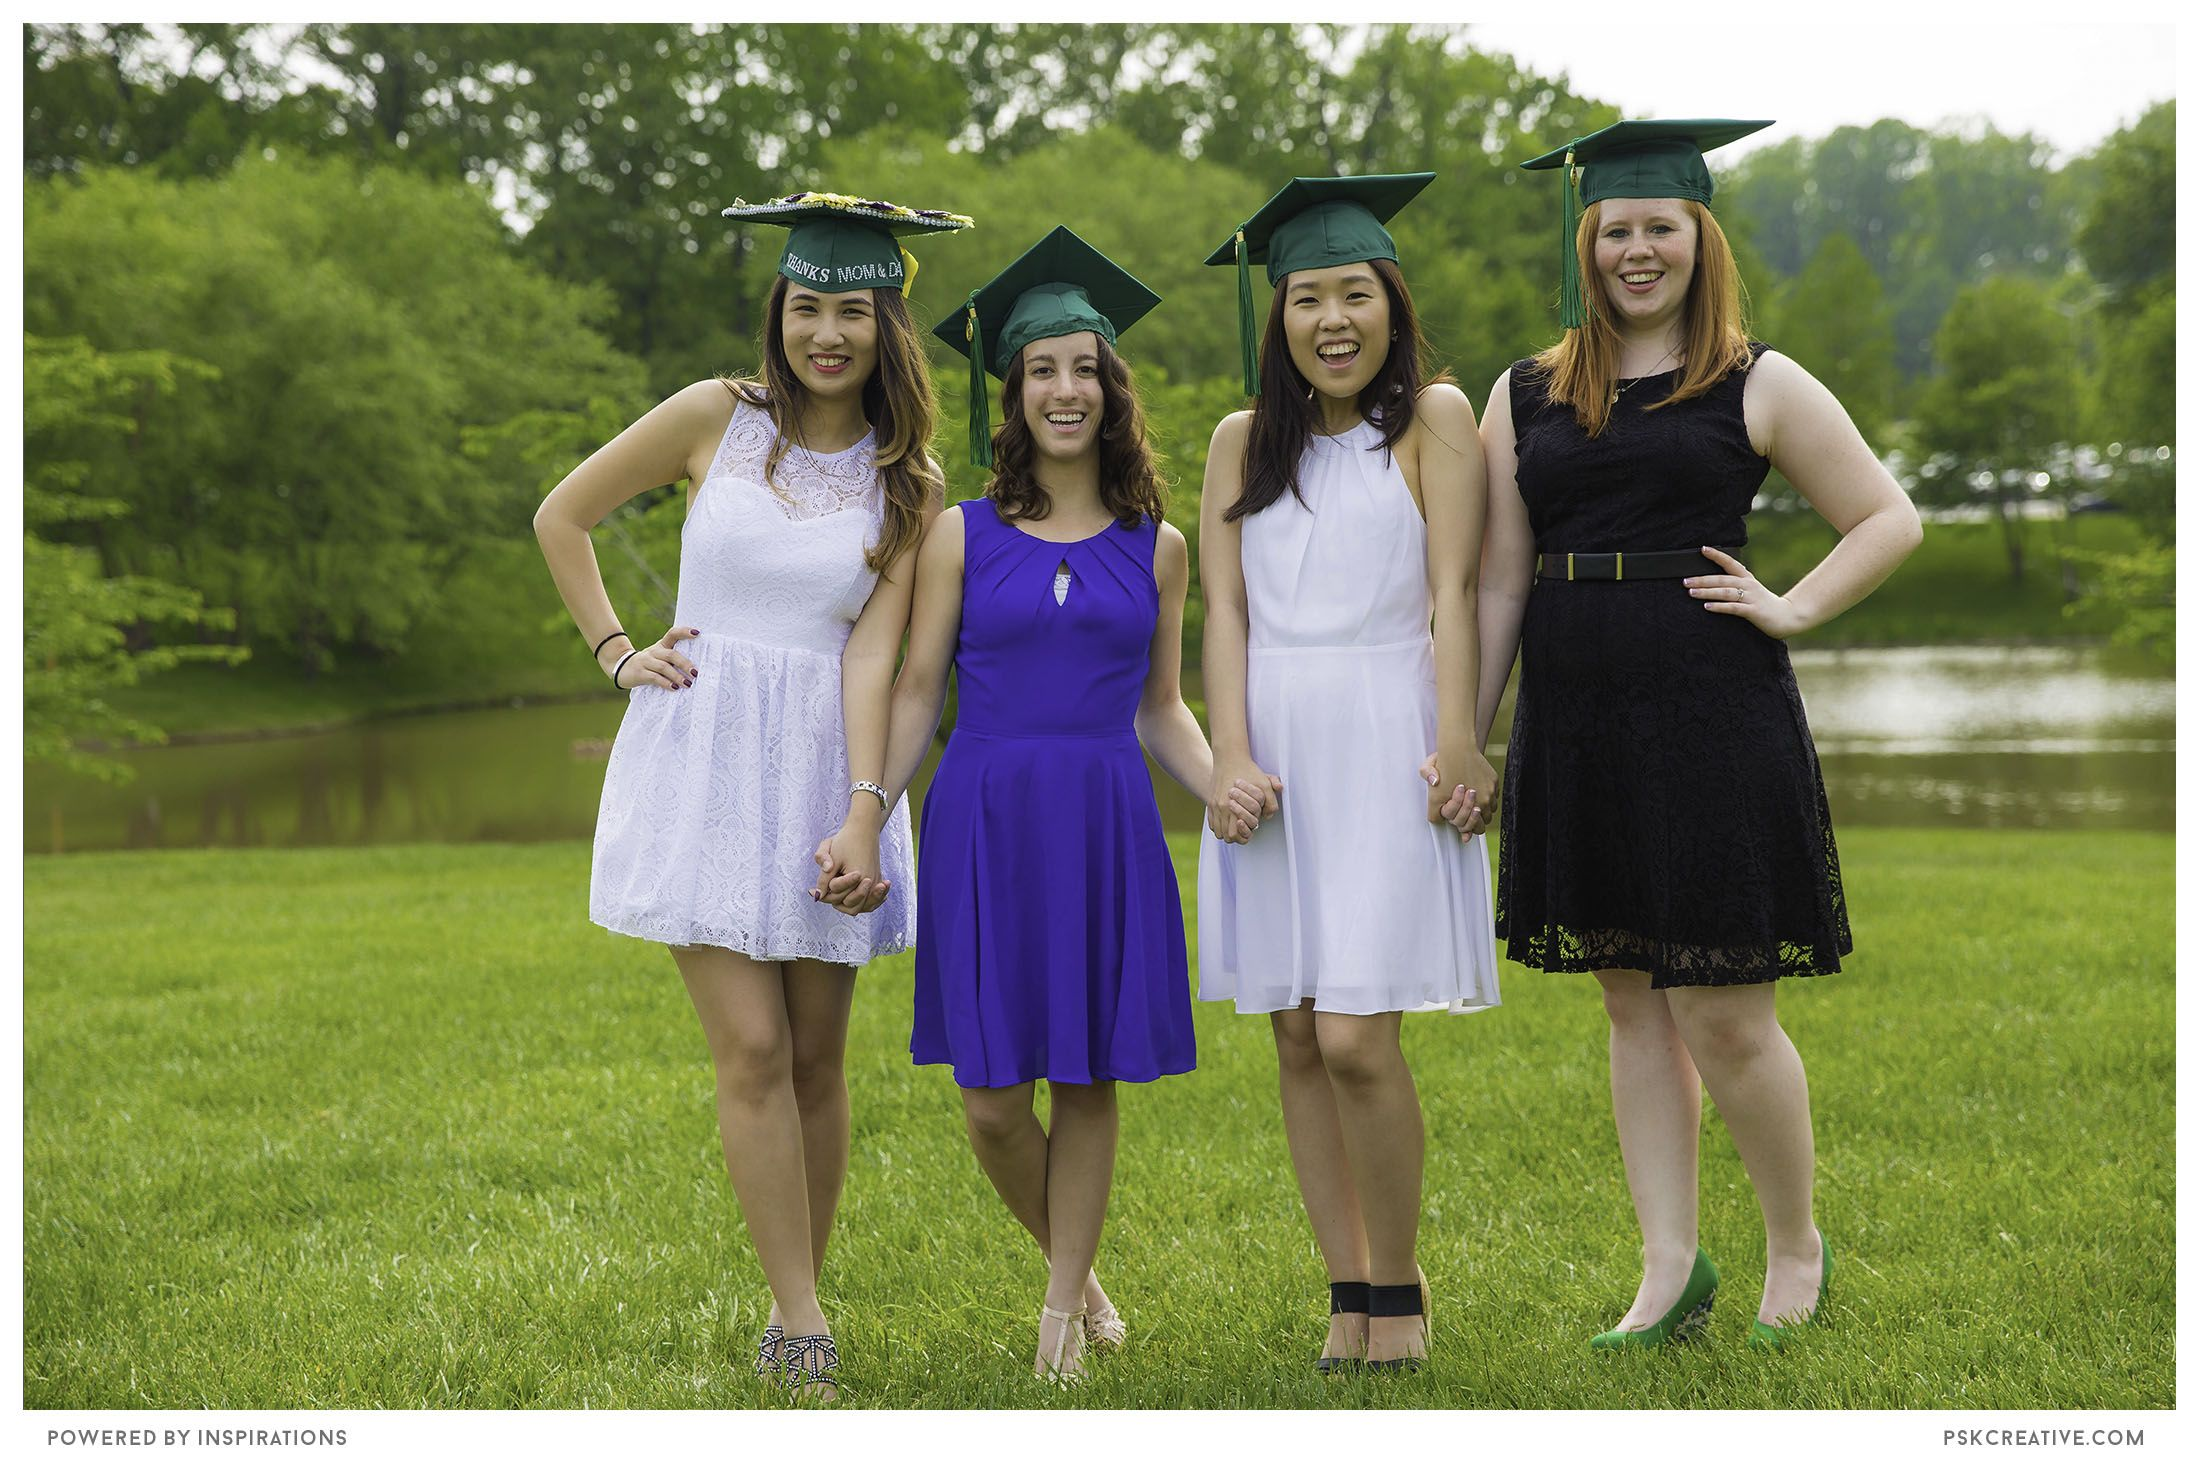 The friendship of the girls are captured throughout the school, as well as their four years of memories.